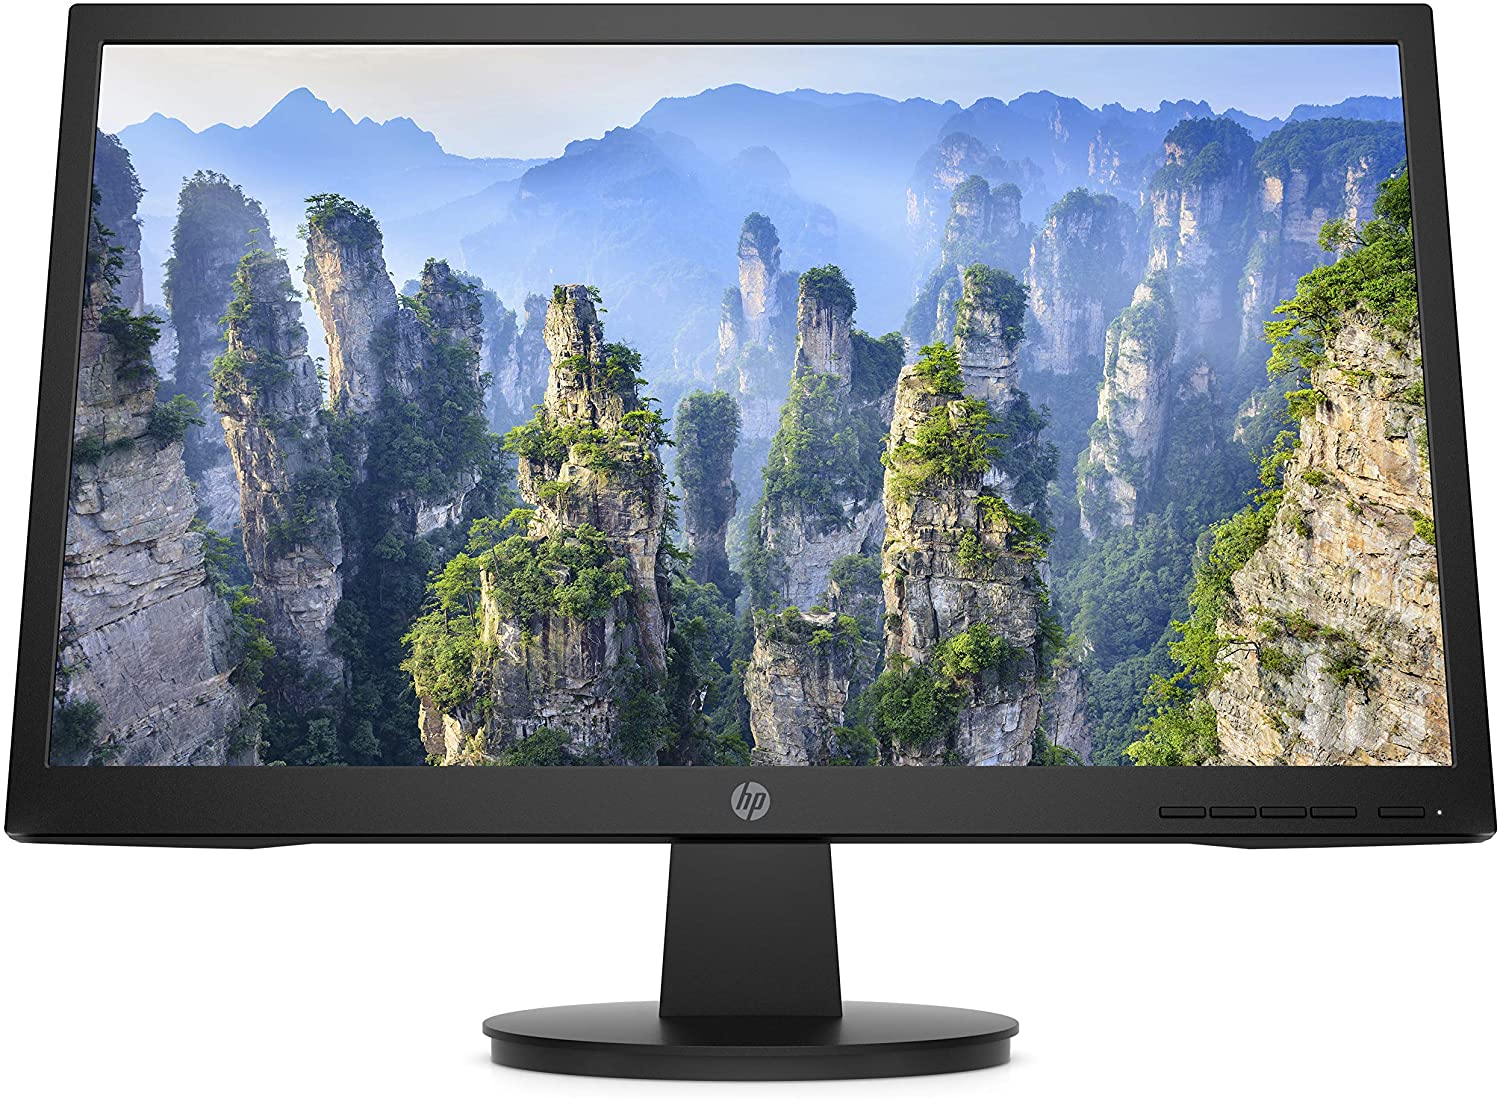 HP V22 FHD 21.5-inch LED Computer Monitor - Low Blue Light